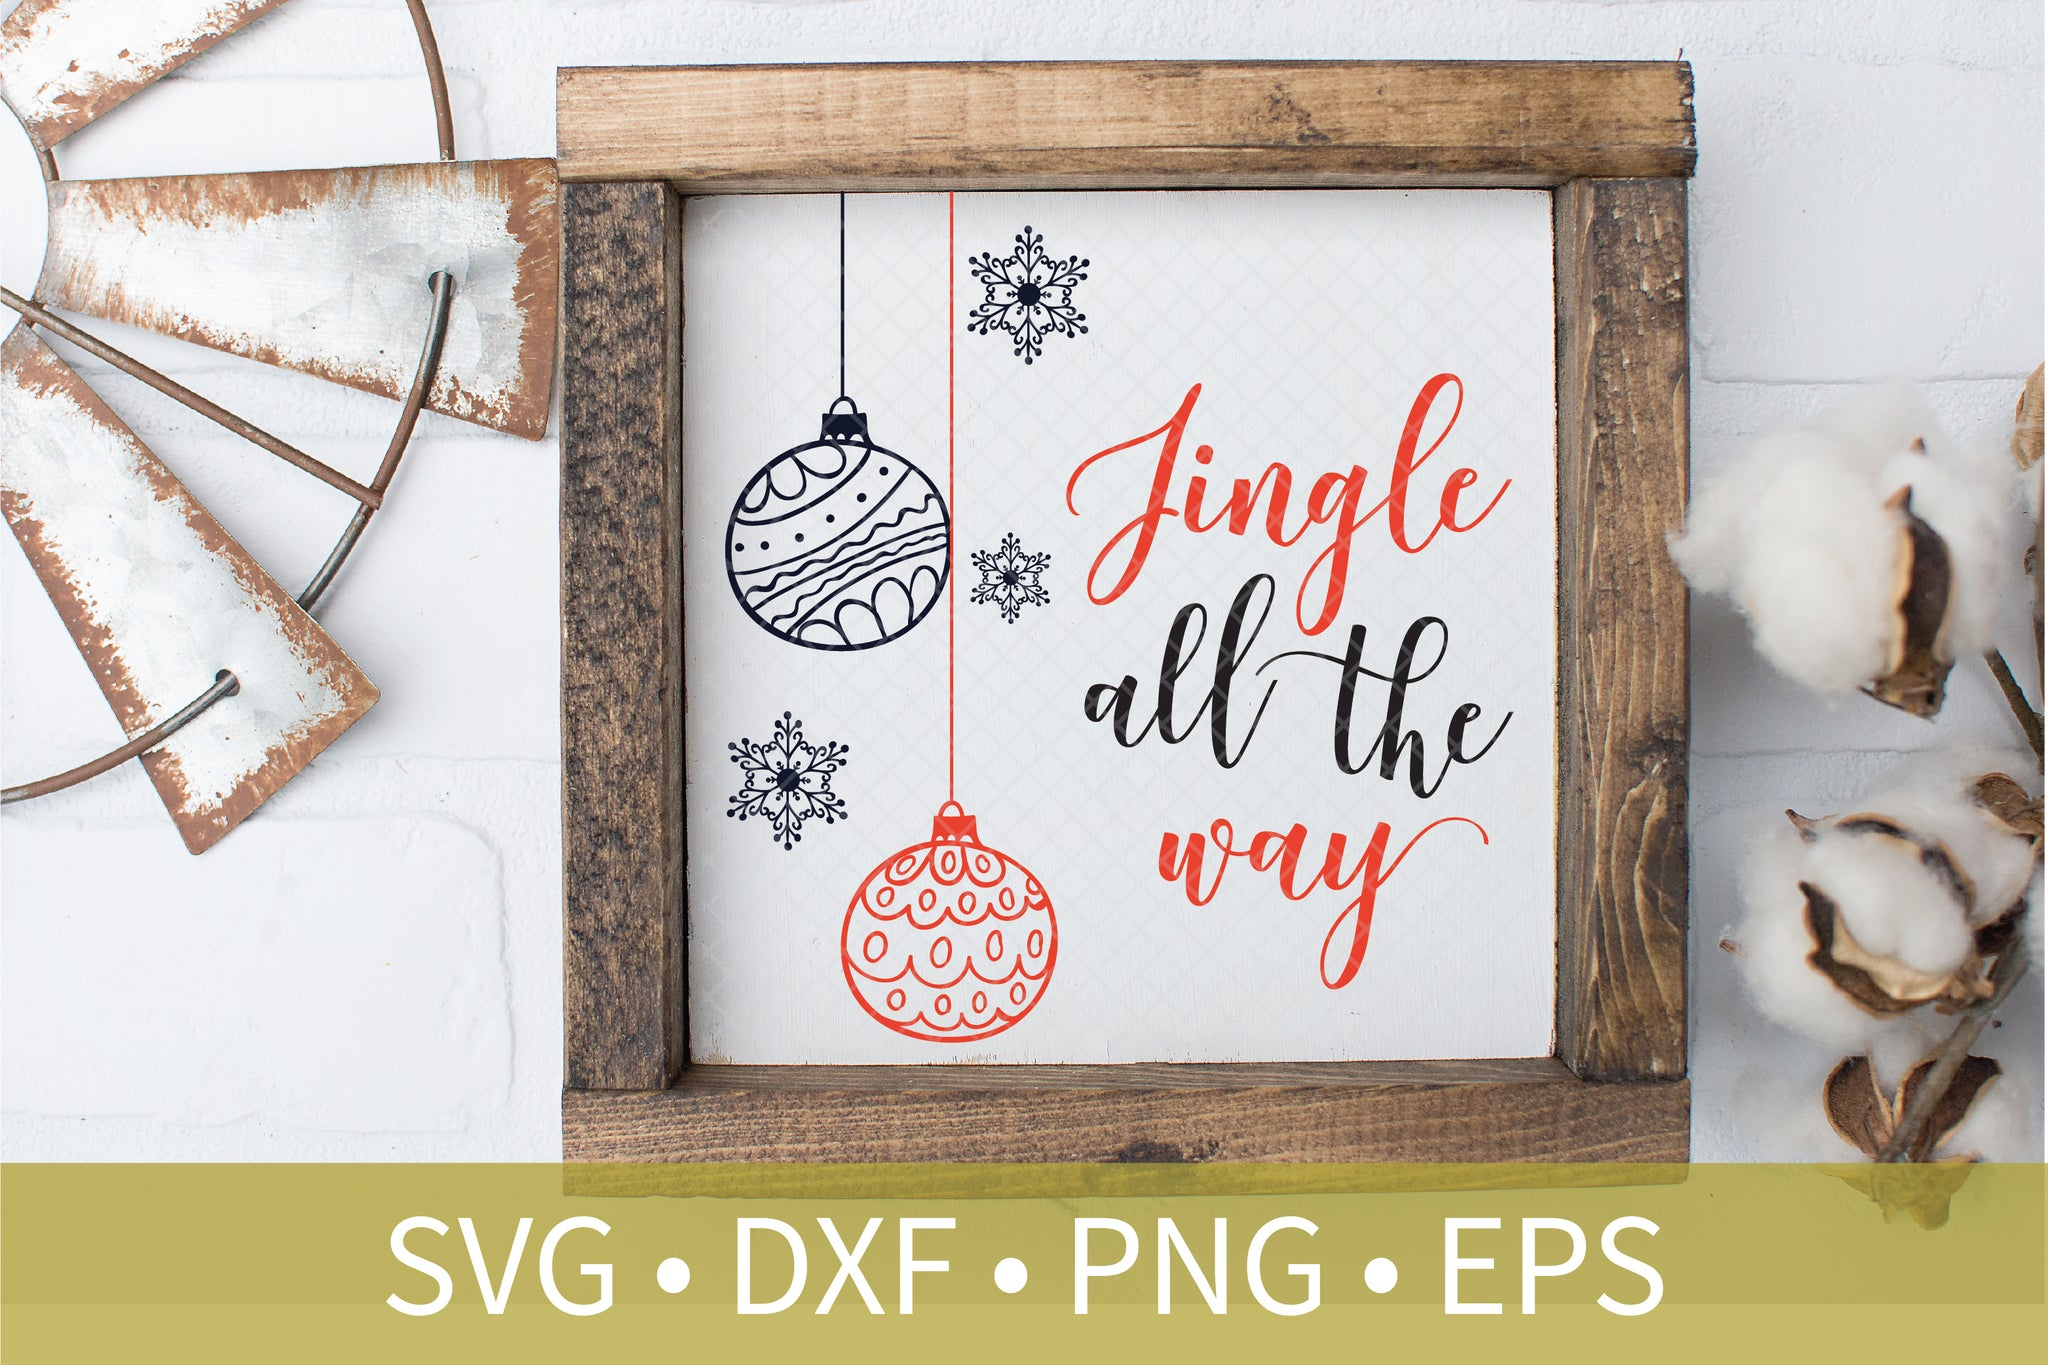 Jingle All The Way Christmas Bulb Ornament svg dxf eps png file - Christmas svg dxf clipart - Christmas Decor DIY Craft - Automatic Download